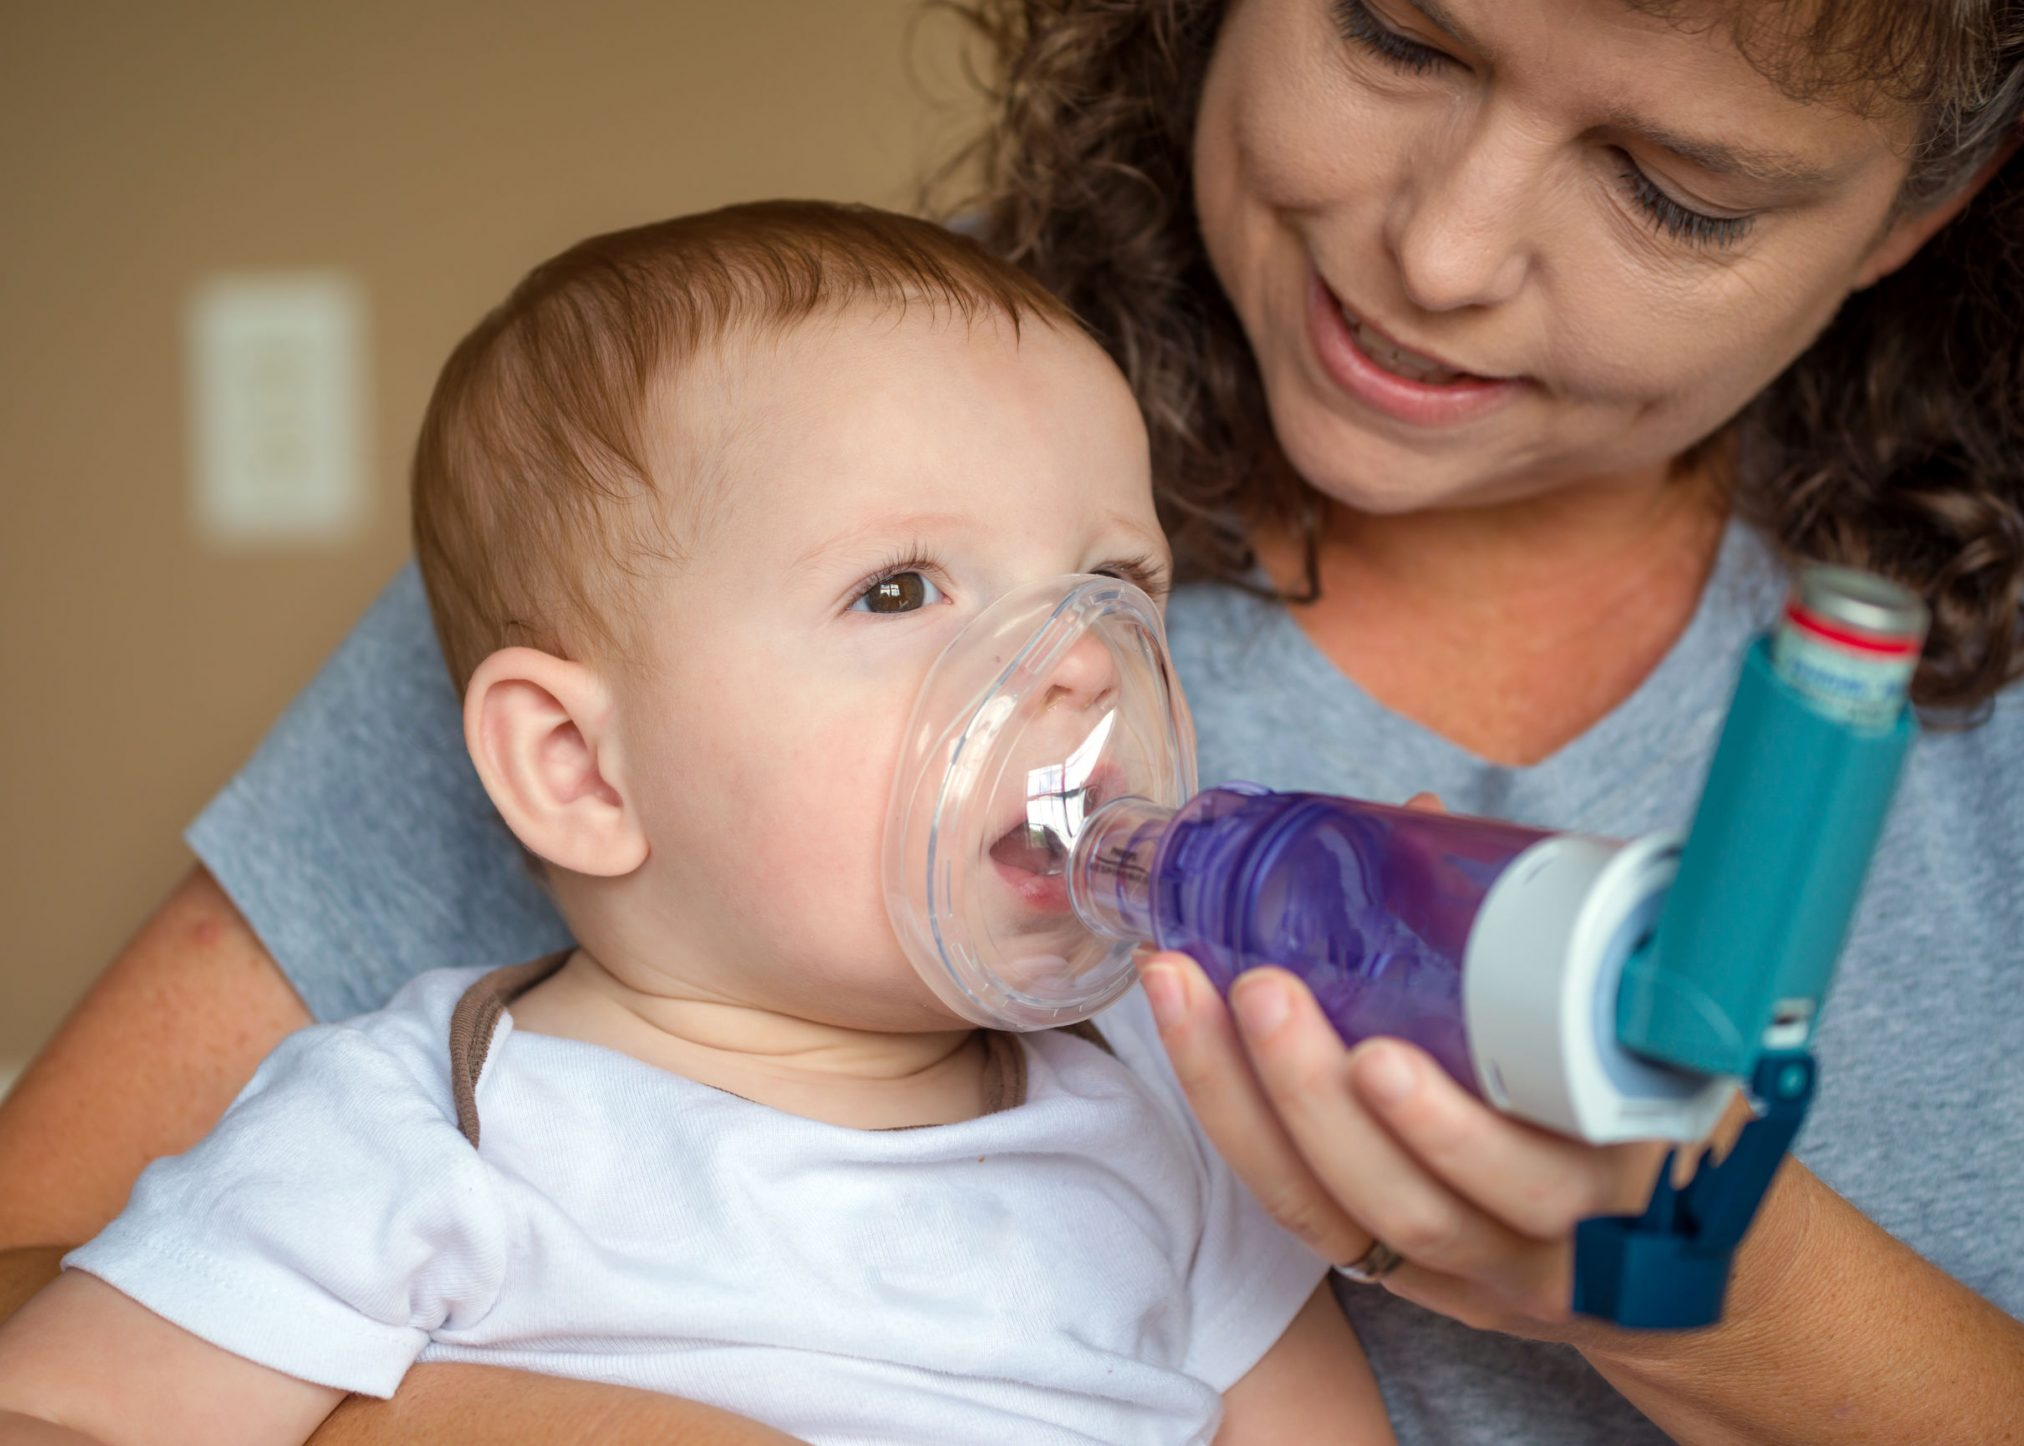 child with asthma and spacer